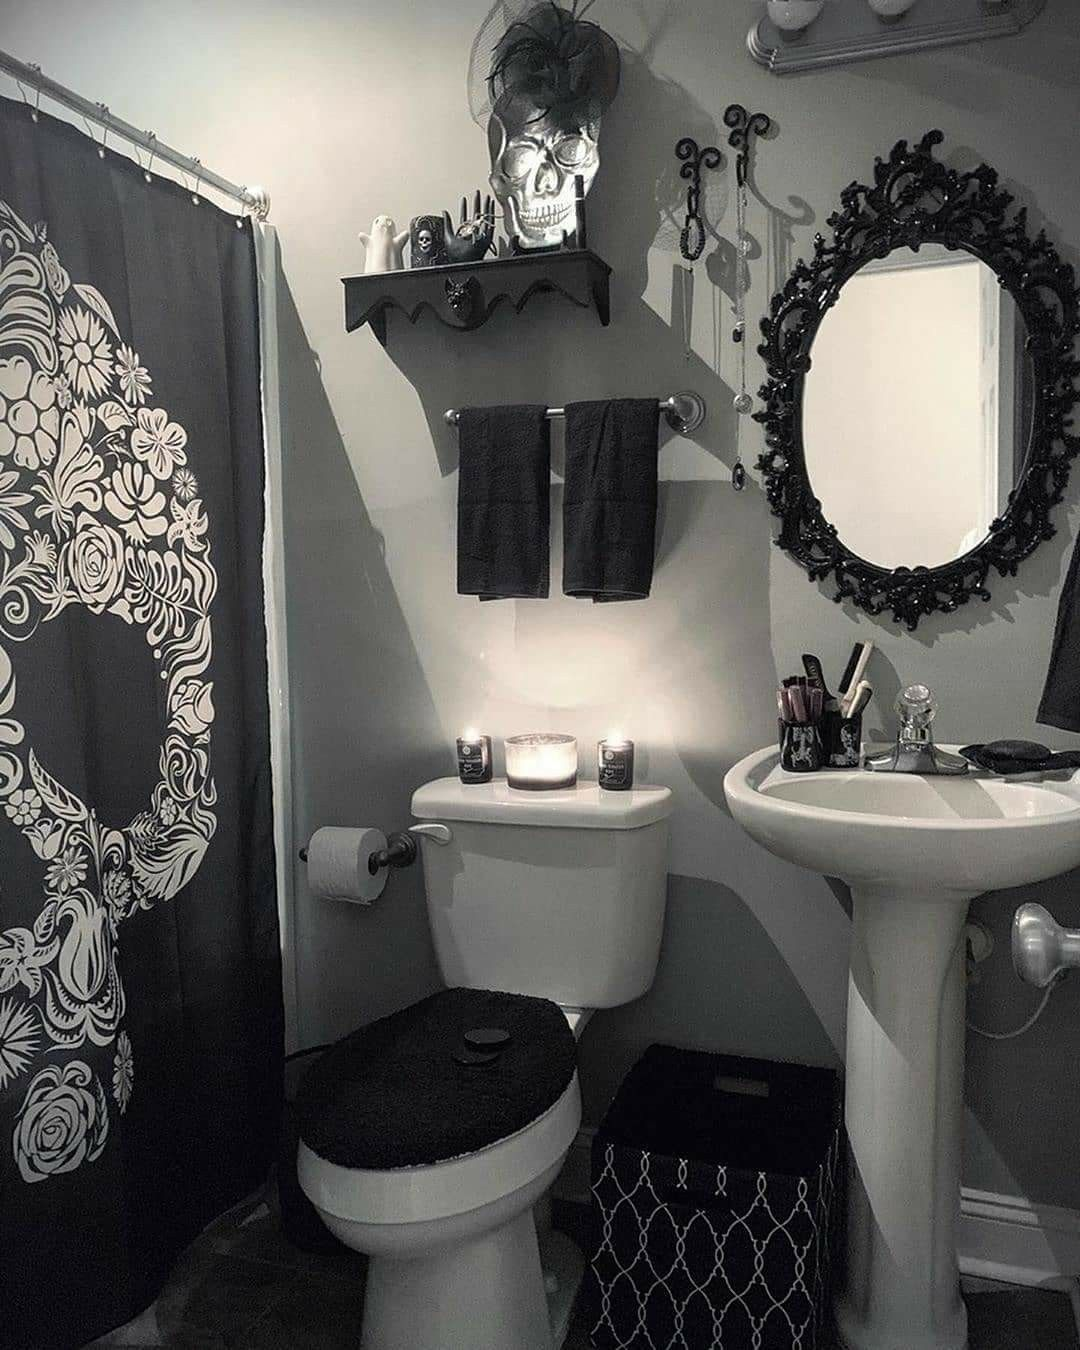 pinunique intuitions on bathroom décor and diy (gothic